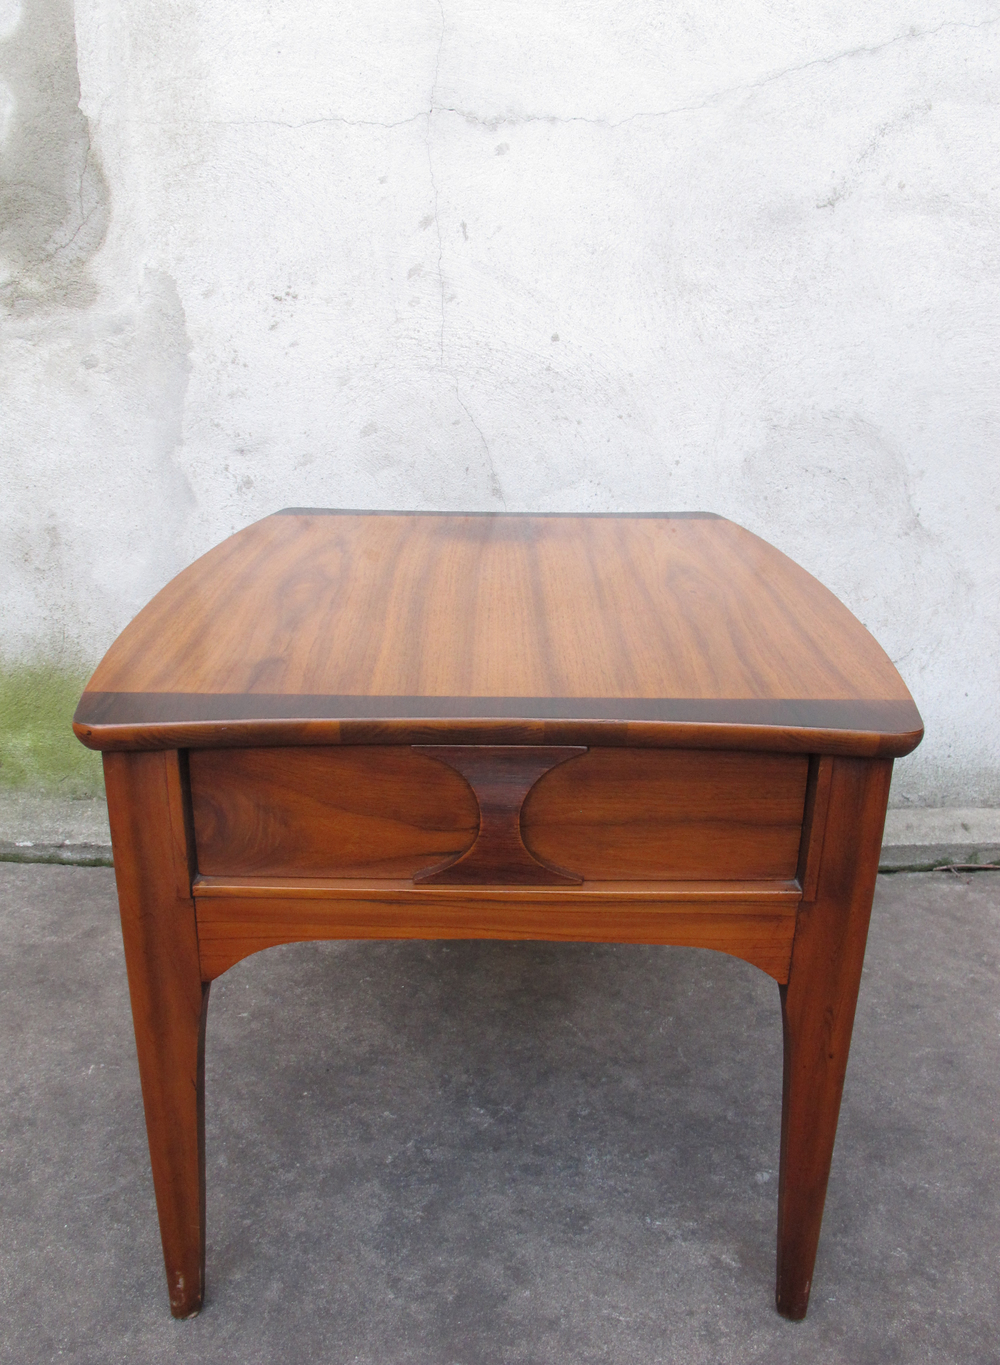 DANISH MODERN STYLE END TABLE BY KENT COFFEY